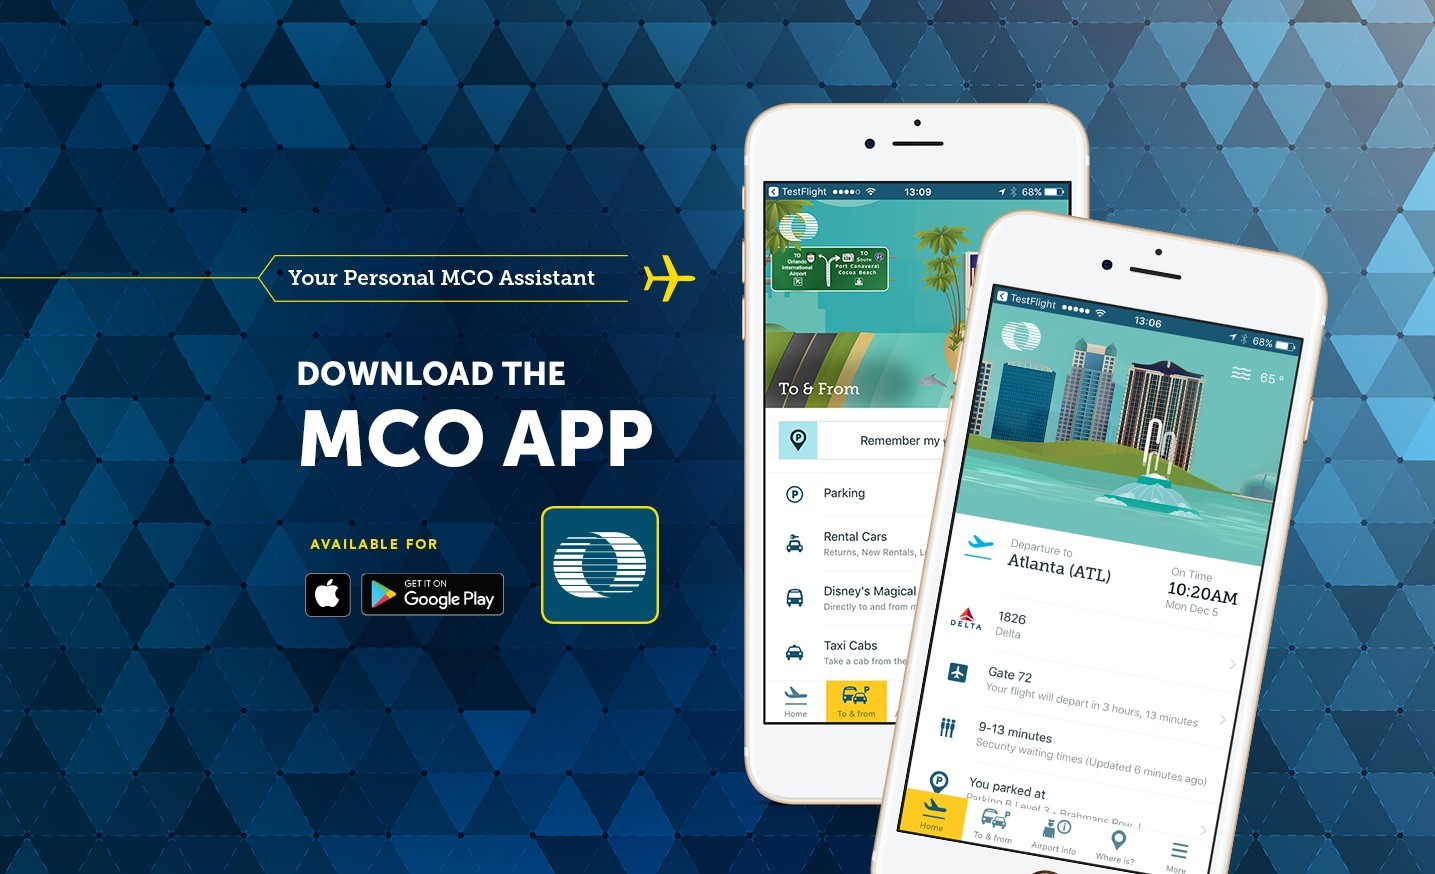 MCO App - Your Personal MCO Assistant